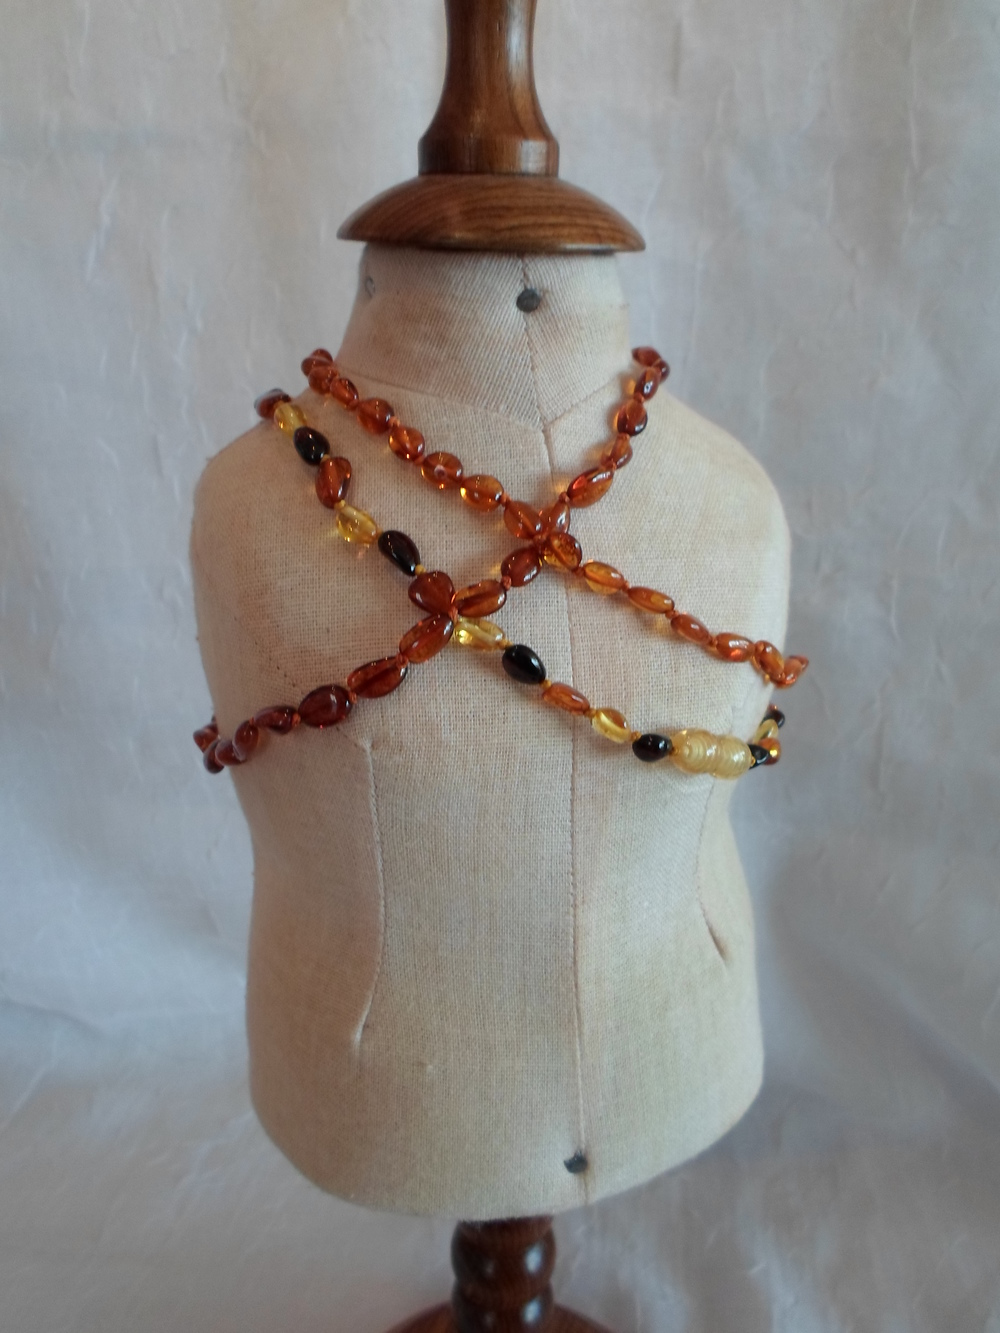 Amber Teething Necklace for Baby    $21.00    Wants 1 PURCHASED